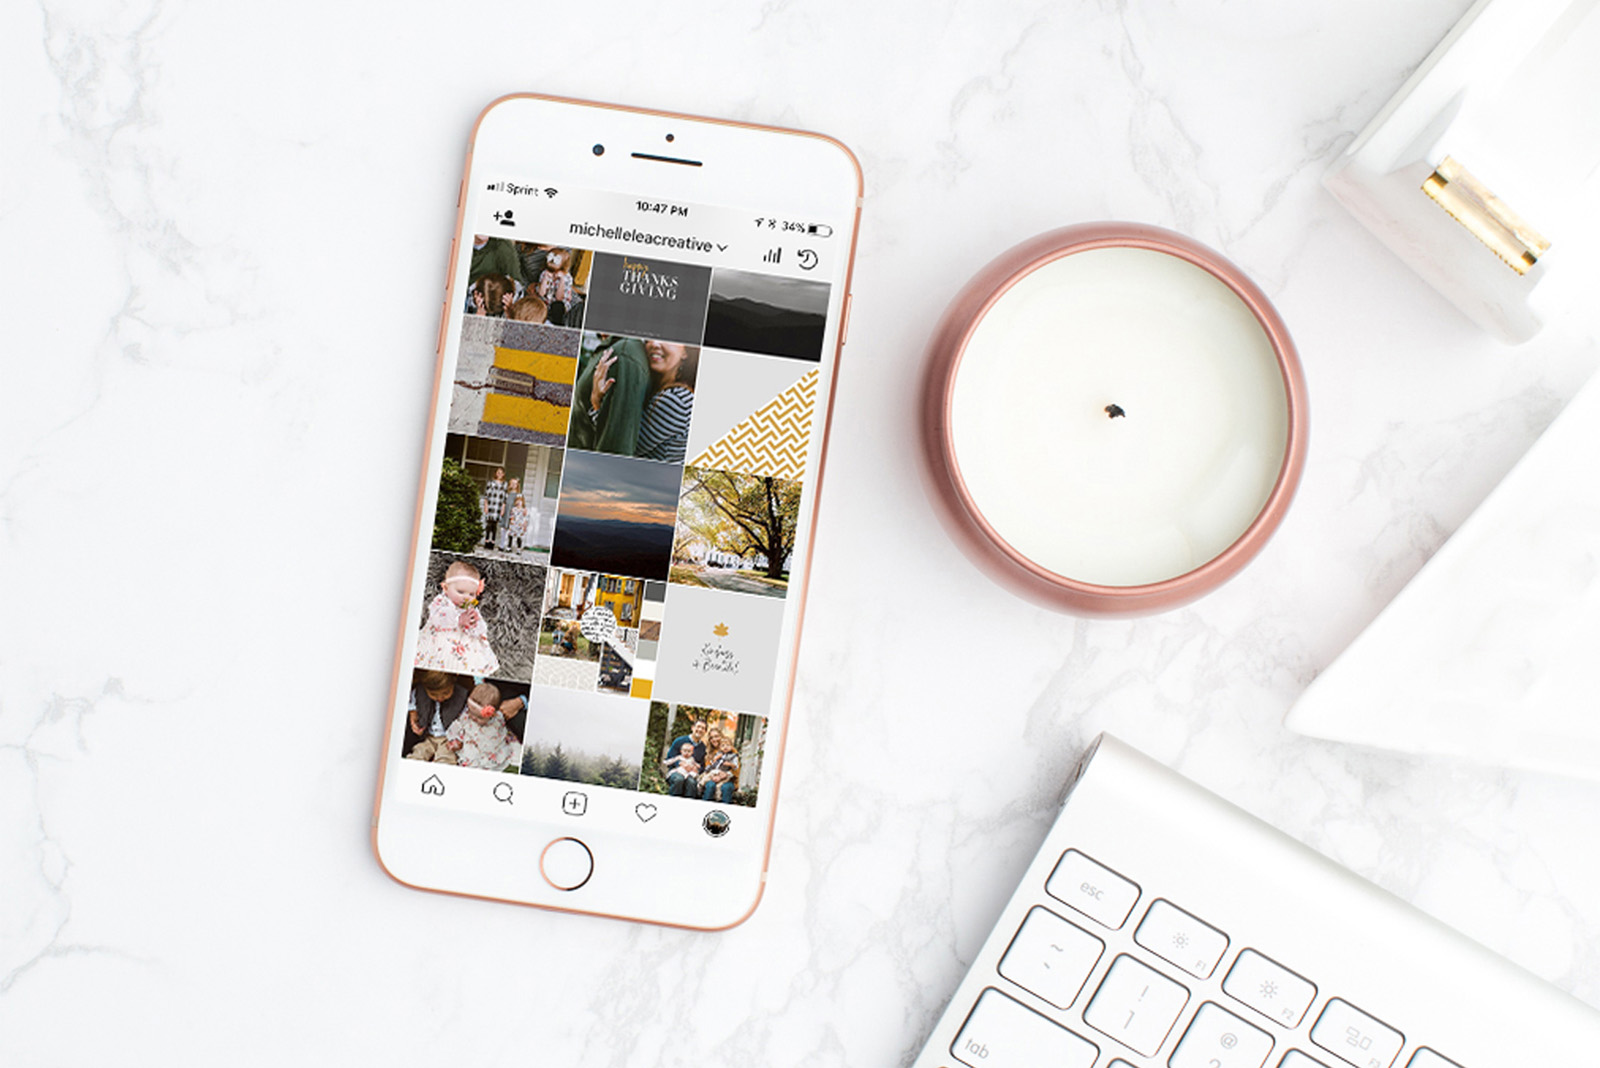 8 Easy tips for building an unforgettable Instagram feed